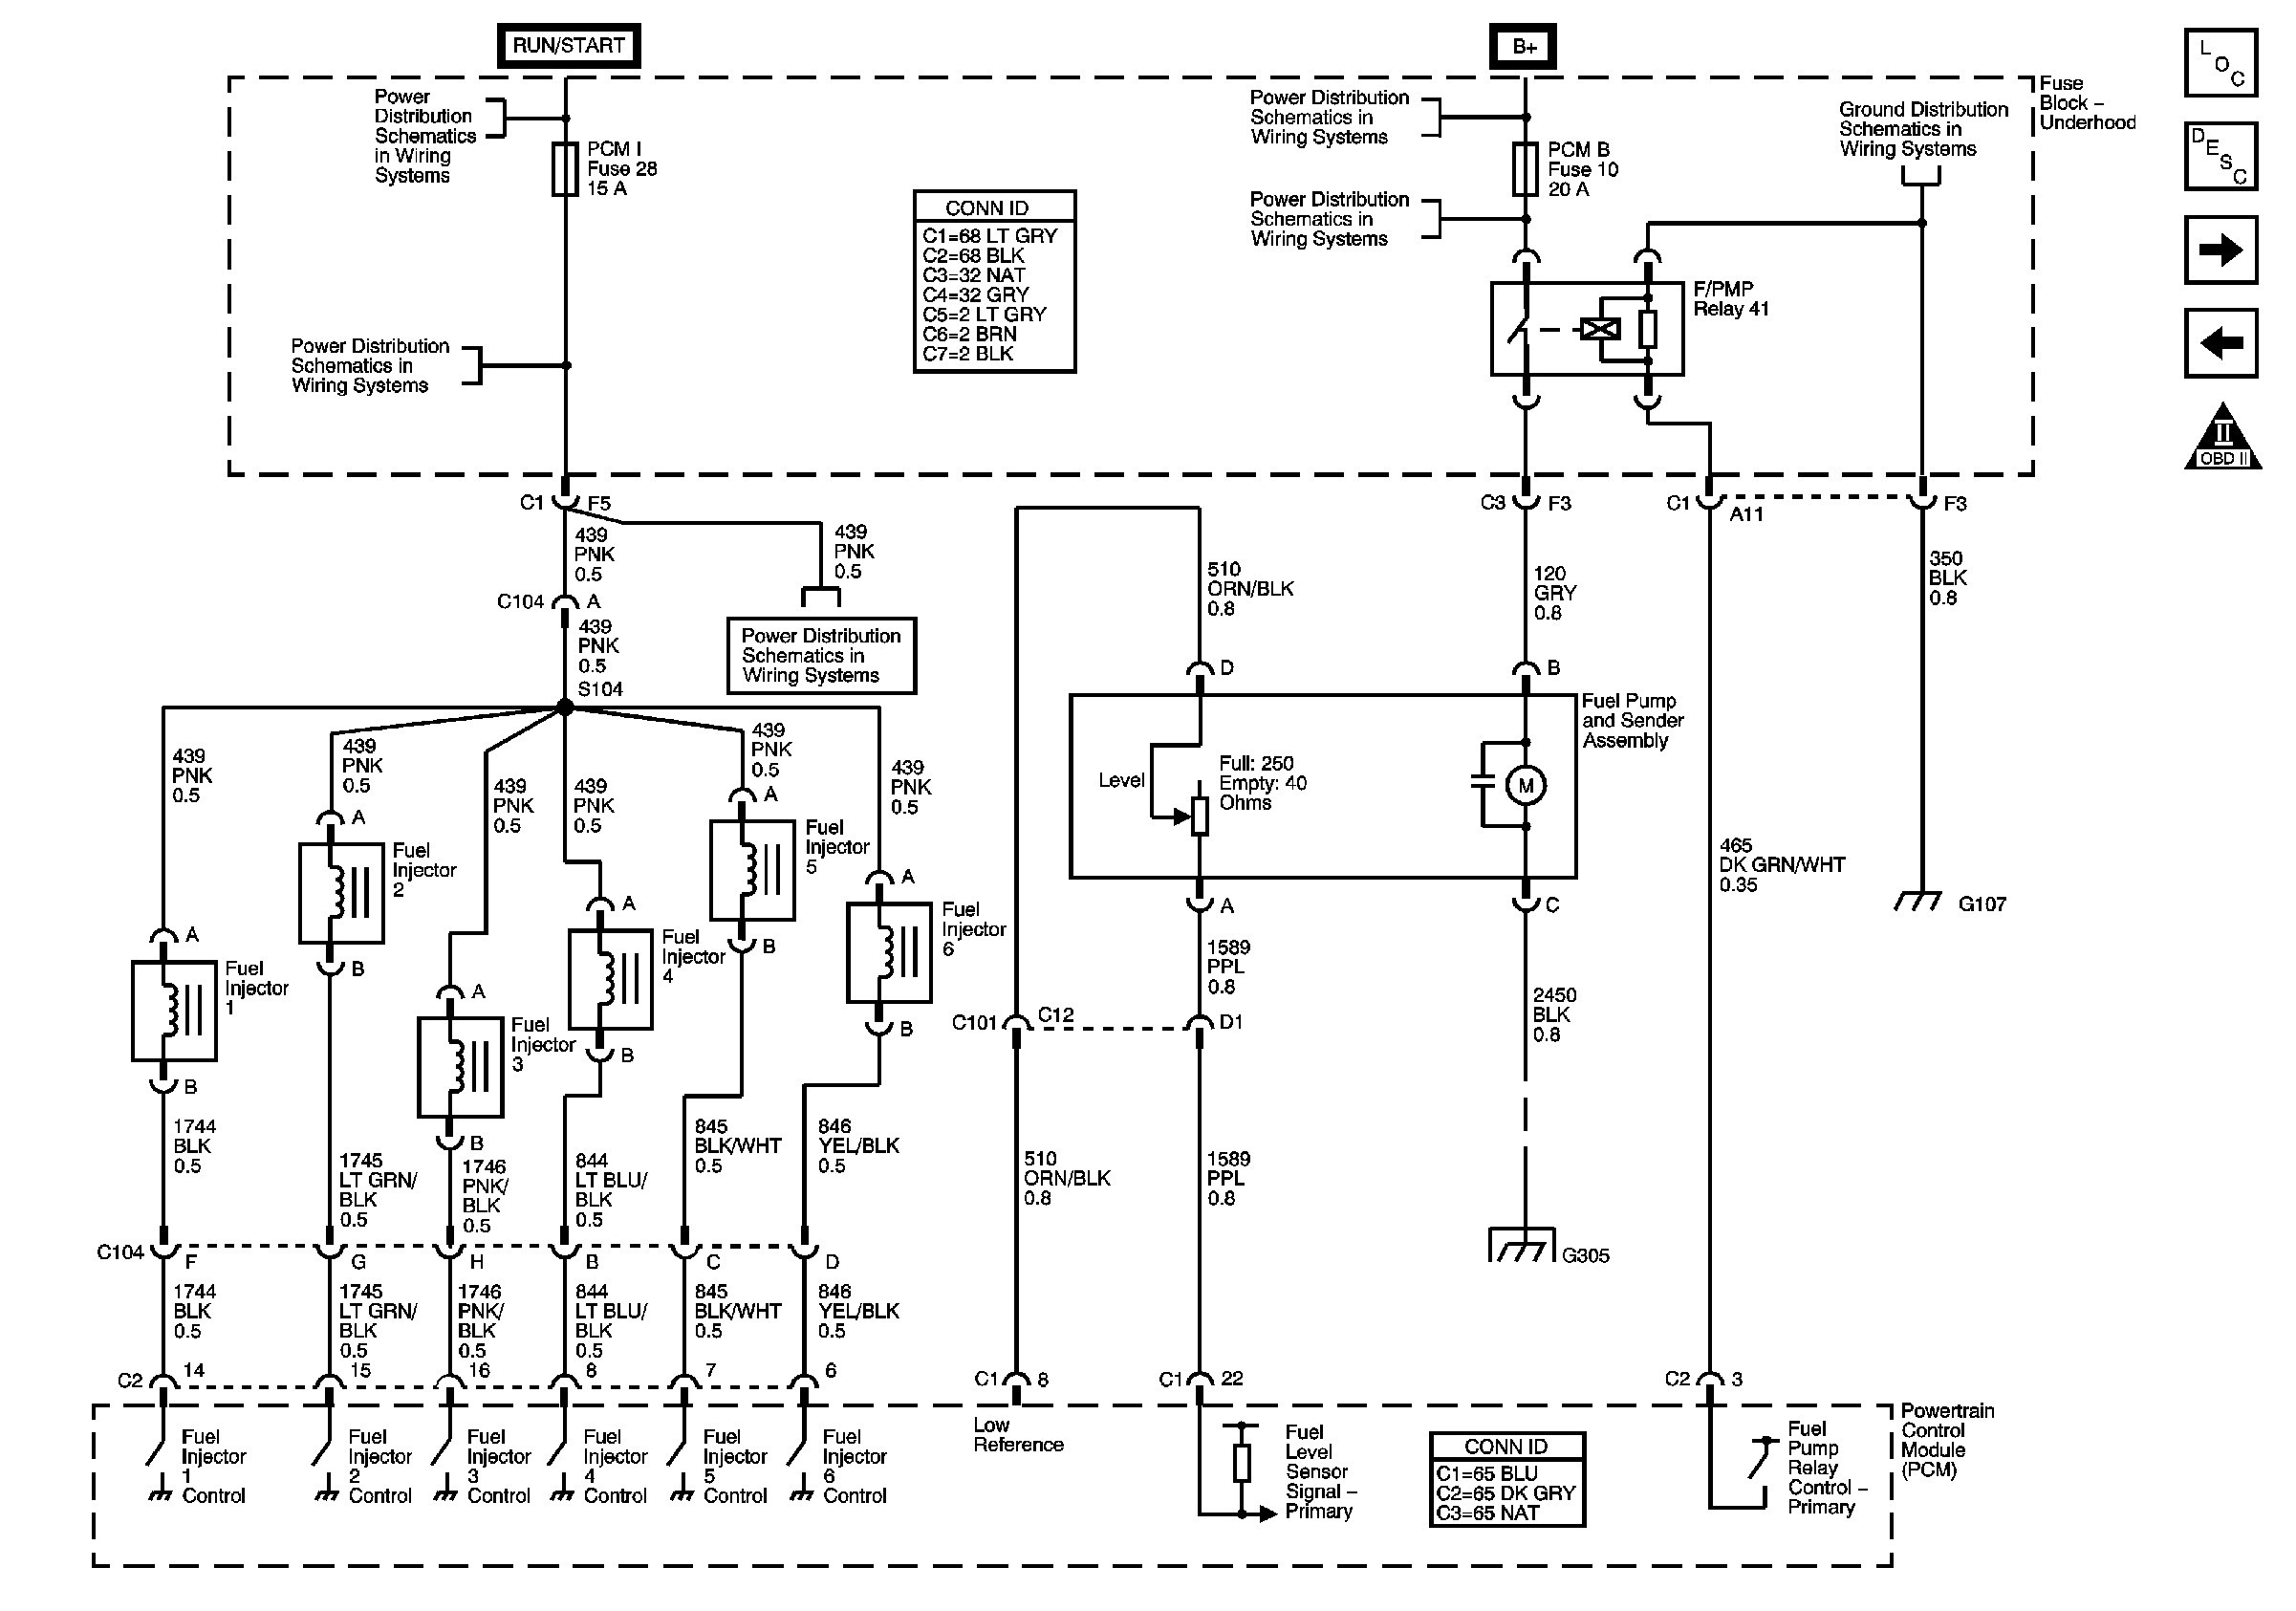 DIAGRAM] 2003 Chevrolet Trailblazer Wiring Diagrams FULL Version HD Quality Wiring  Diagrams - MILSDIAGRAM.CLAUDIOFIORENTINI.ITDiagram Database - claudiofiorentini.it